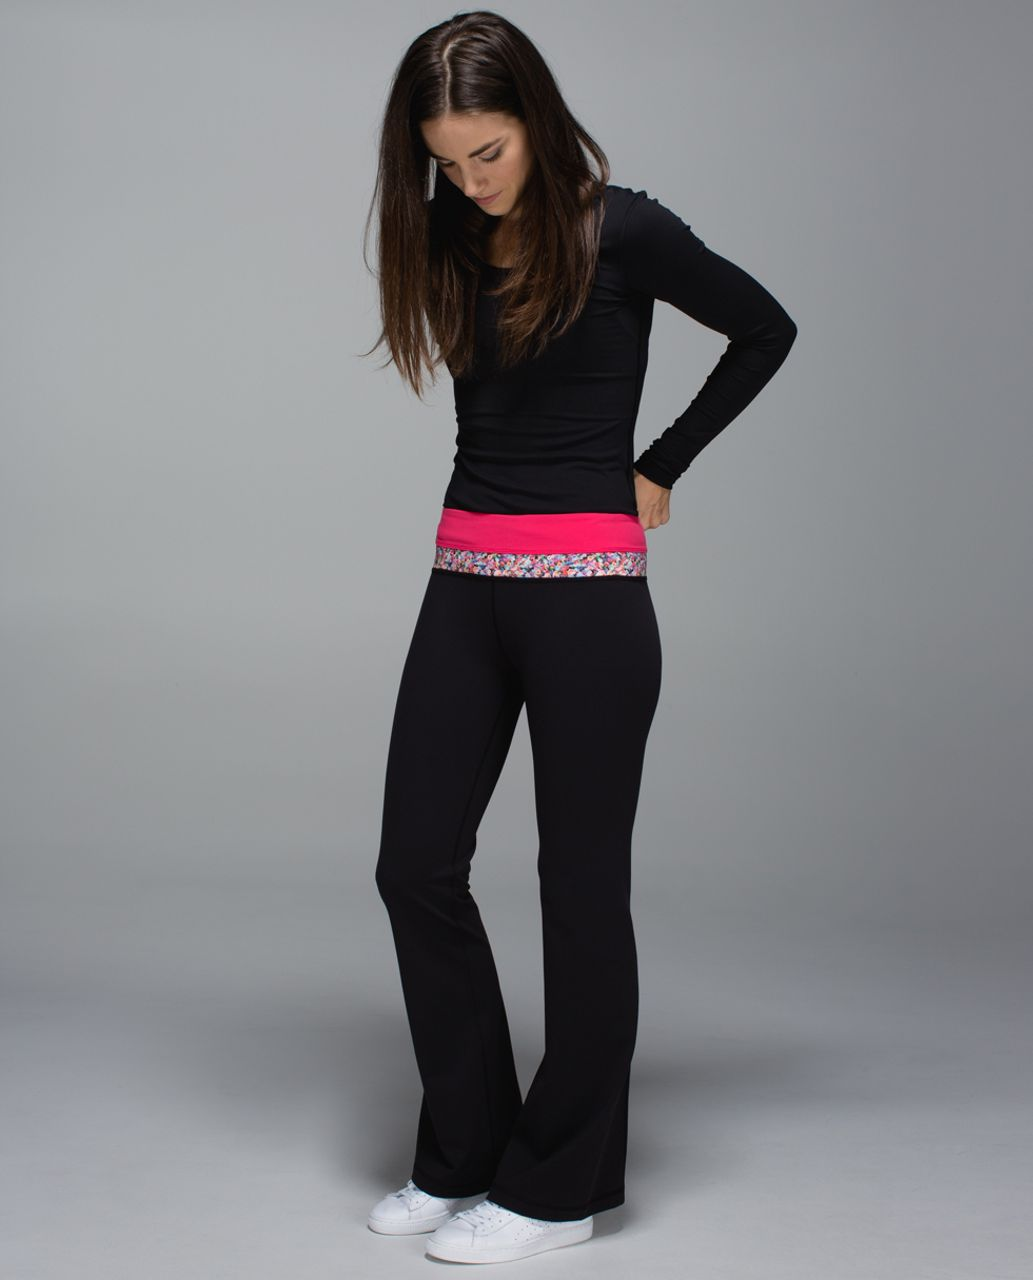 Lululemon Groove Pant *Full-On Luon (Tall) - Black / Boom Juice / Prism Petal Multi